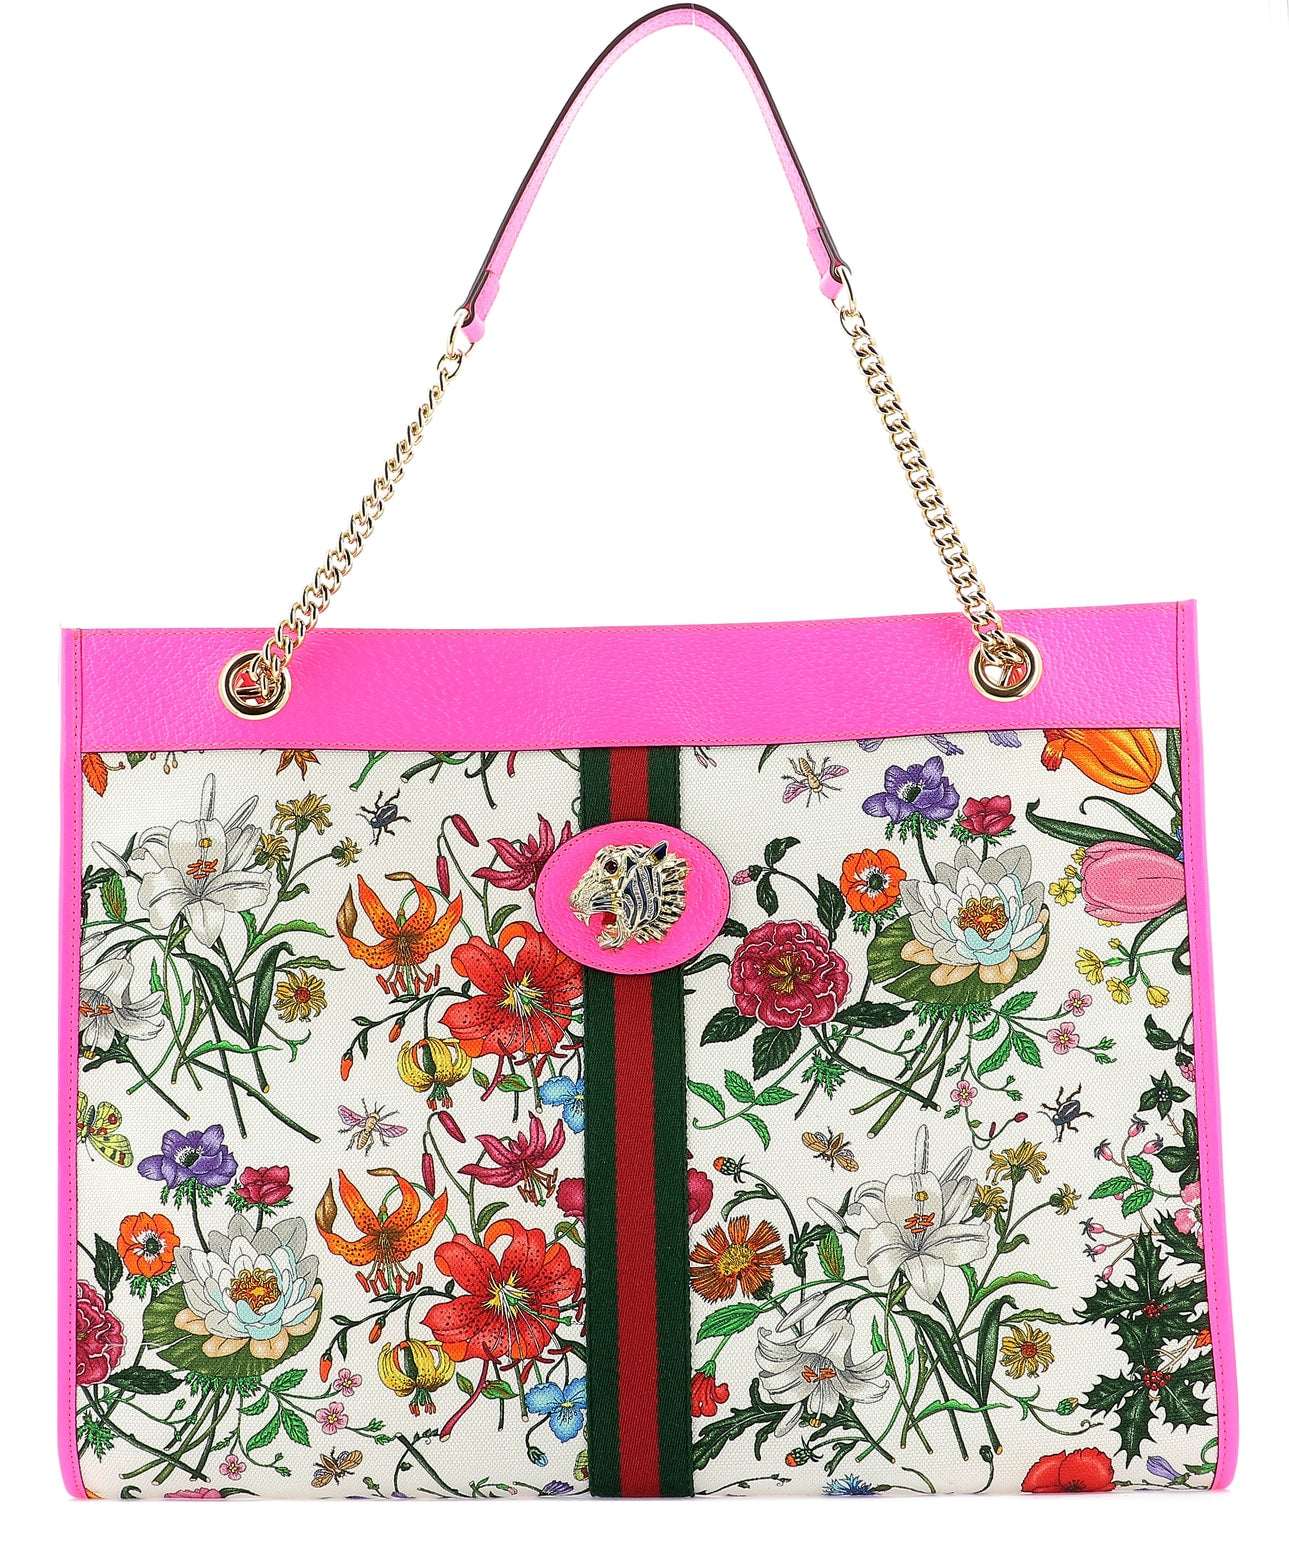 060532980f52 Gucci Neon Pink Leather Trim Floral Print Canvas Tote Bag | ModeSens